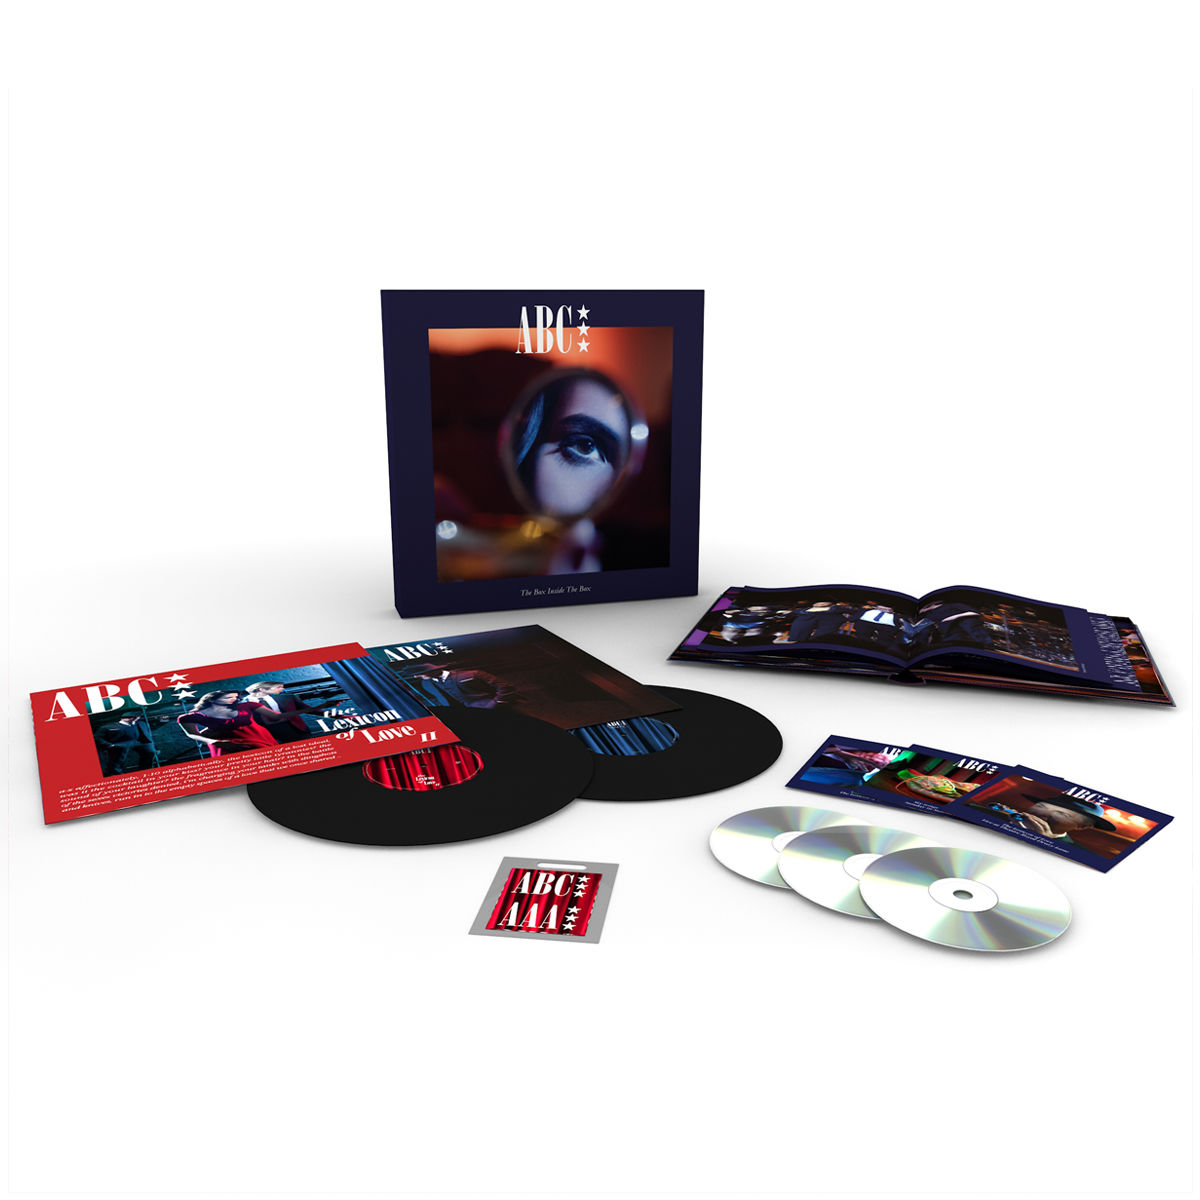 ABC: Limited Edition and Signed – ABC: 'The Box Inside The Box' and MP3